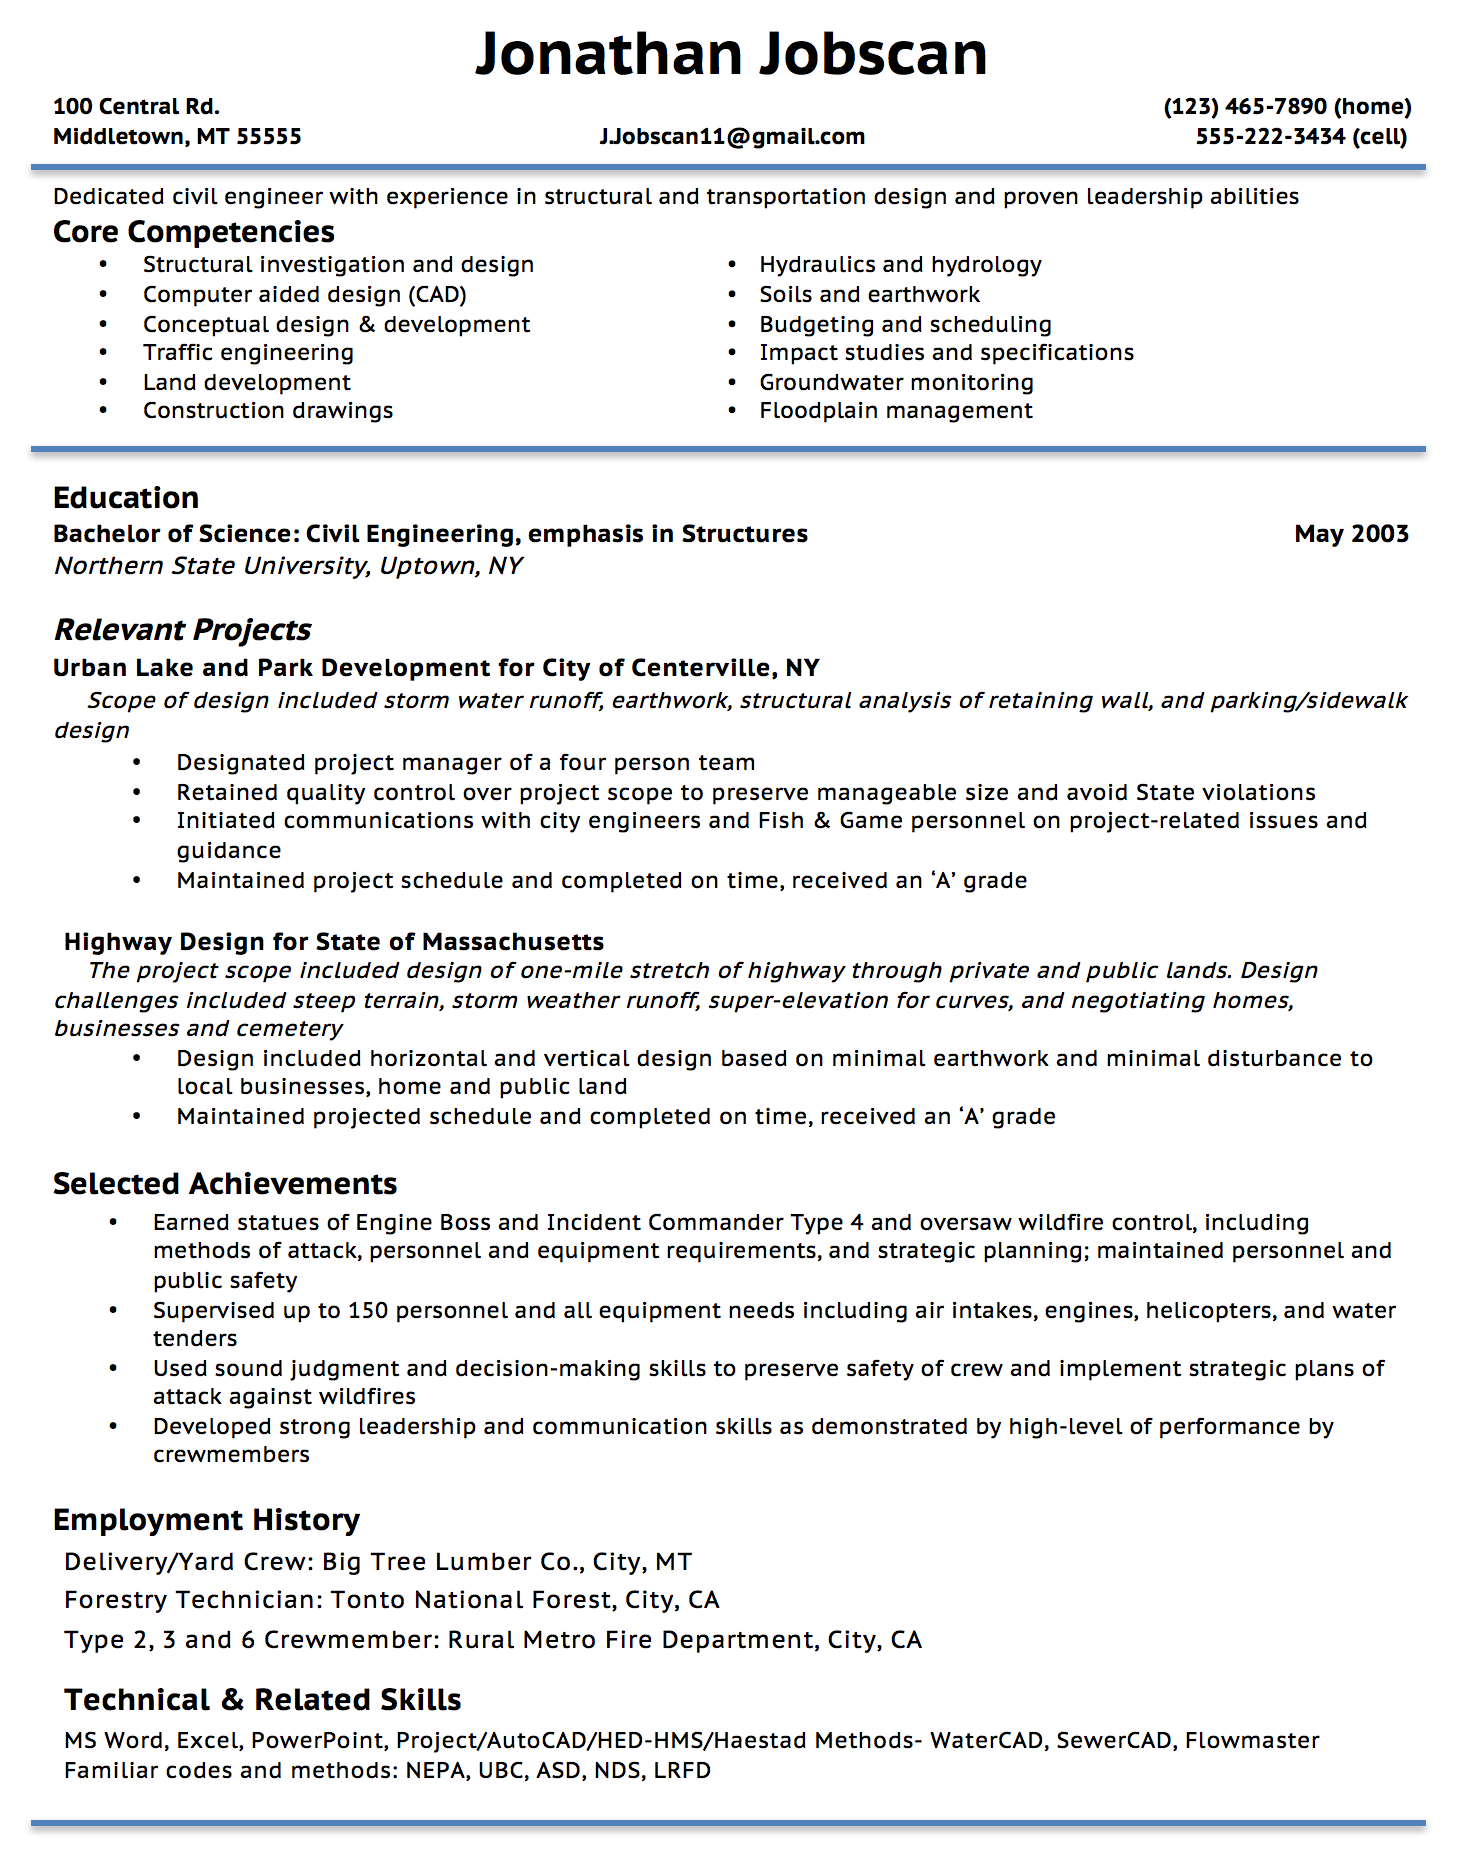 Opposenewapstandardsus  Surprising Resume Writing Guide  Jobscan With Inspiring Example Of A Functional Resume Format With Appealing Administrator Resume Sample Also Sales Summary Resume In Addition Bank Teller Resume Example And How To Make A Resum As Well As Sample Resume Entry Level Additionally Furniture Sales Resume From Jobscanco With Opposenewapstandardsus  Inspiring Resume Writing Guide  Jobscan With Appealing Example Of A Functional Resume Format And Surprising Administrator Resume Sample Also Sales Summary Resume In Addition Bank Teller Resume Example From Jobscanco